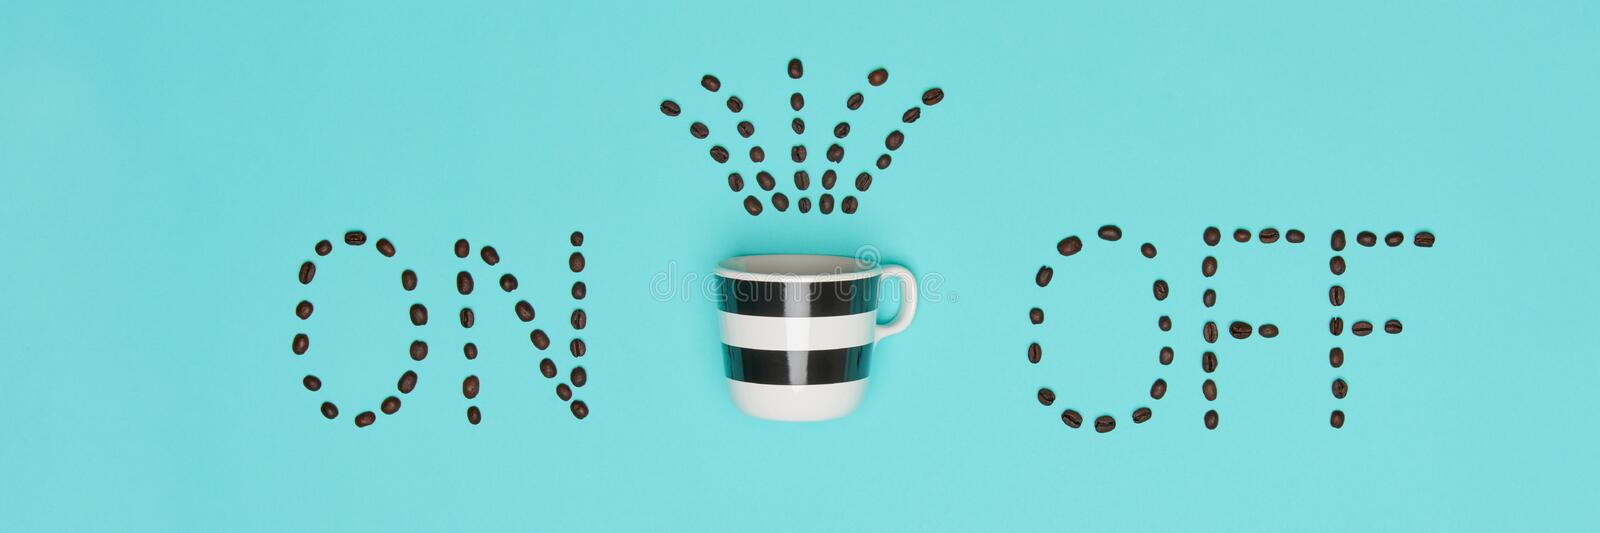 Good Morning Coffee Pastel Coloured Flat Lay. Conceptual Motivation. Cup Of Coffee. Good Morning Coffee Pastel Coloured Flat Lay. Conceptual Motivation. Cup Of royalty free stock images